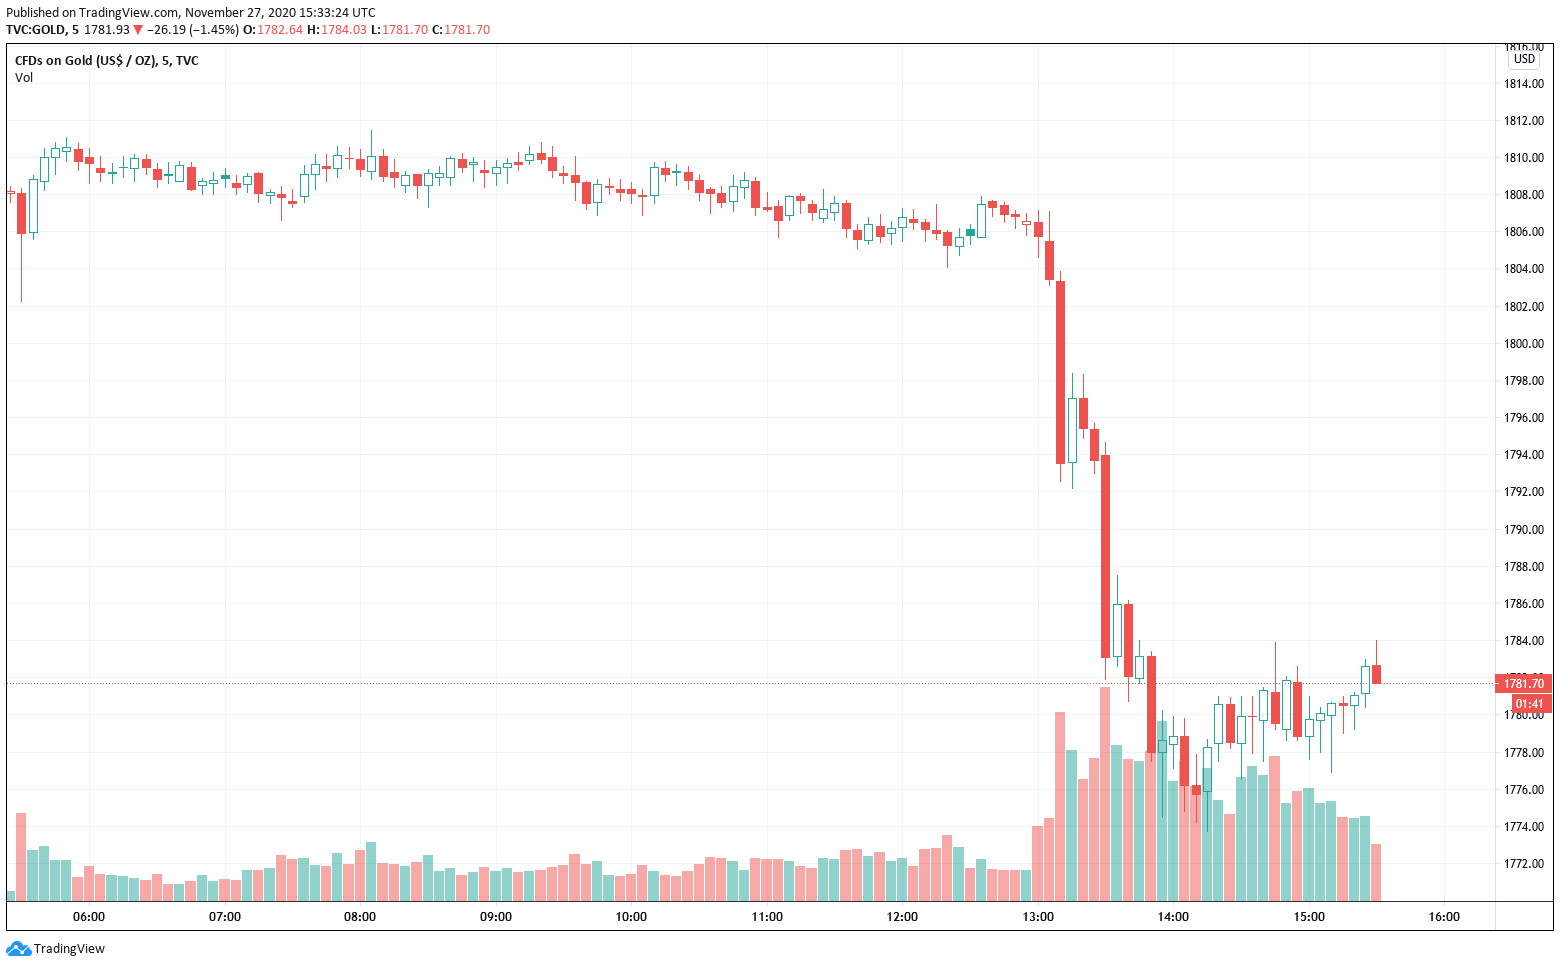 Gold price continues to tank.